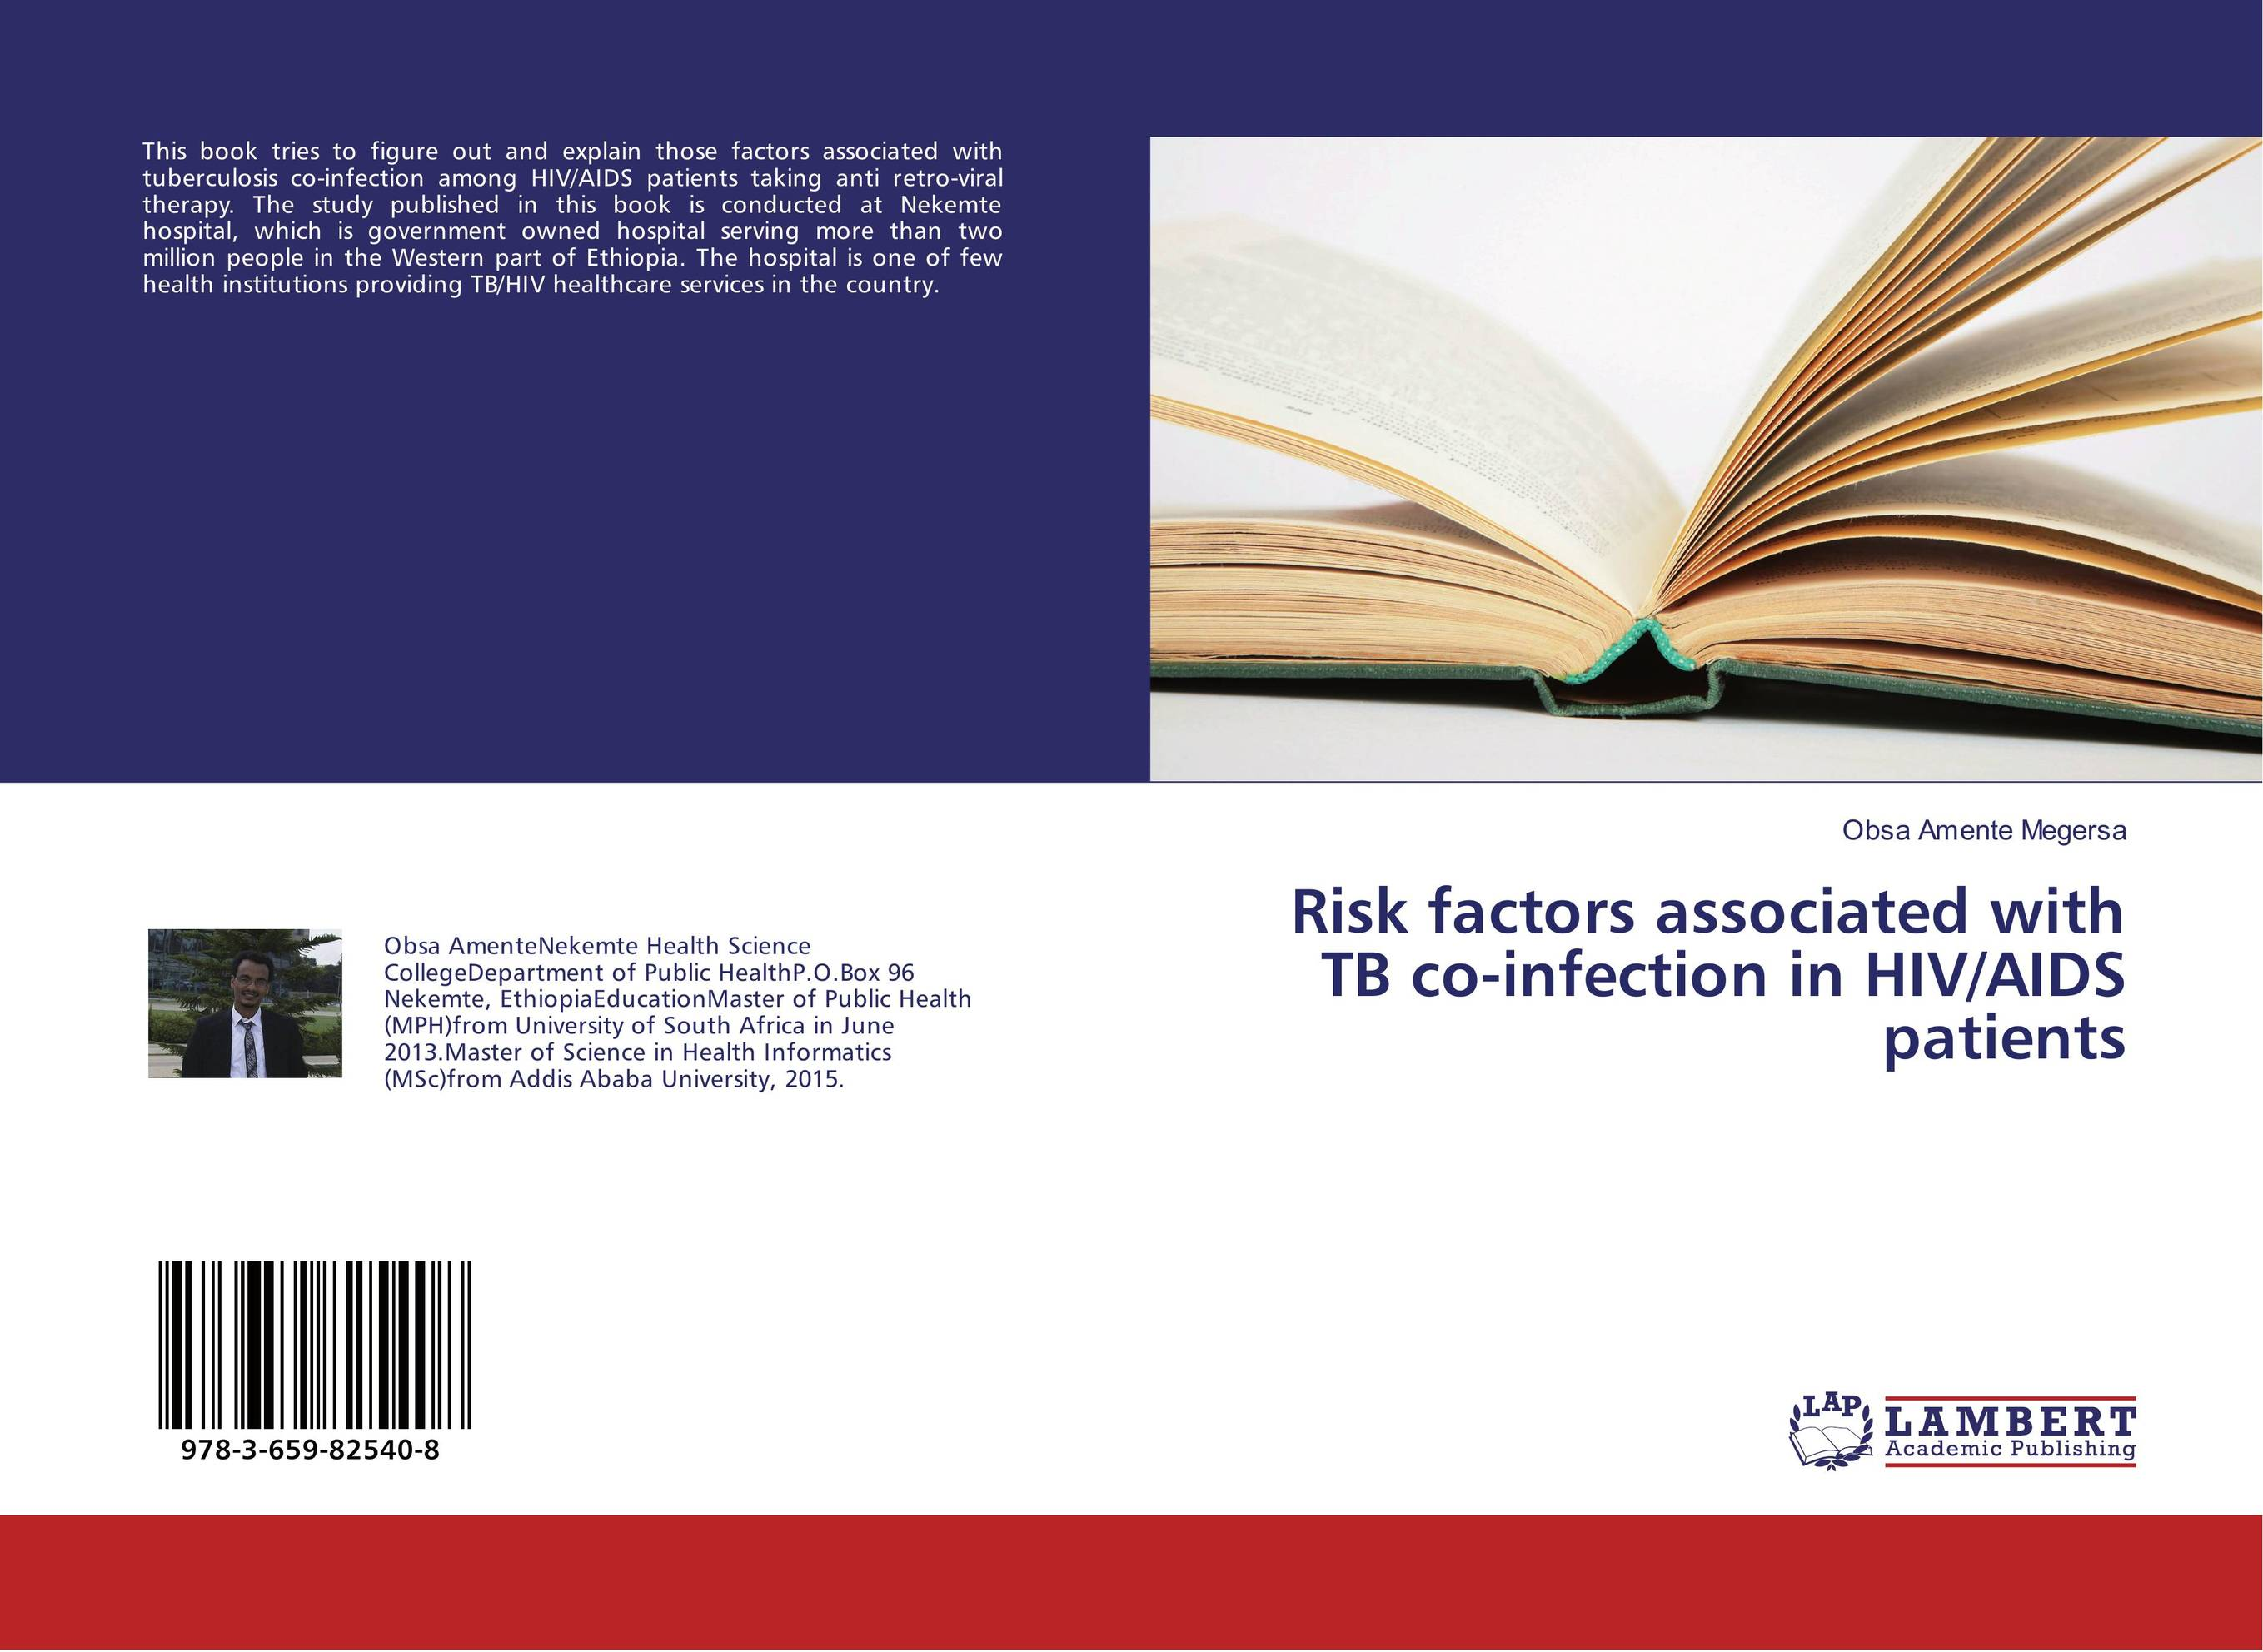 Risk factors associated with TB co-infection in HIV/AIDS patients risk factors associated with tb co infection in hiv aids patients